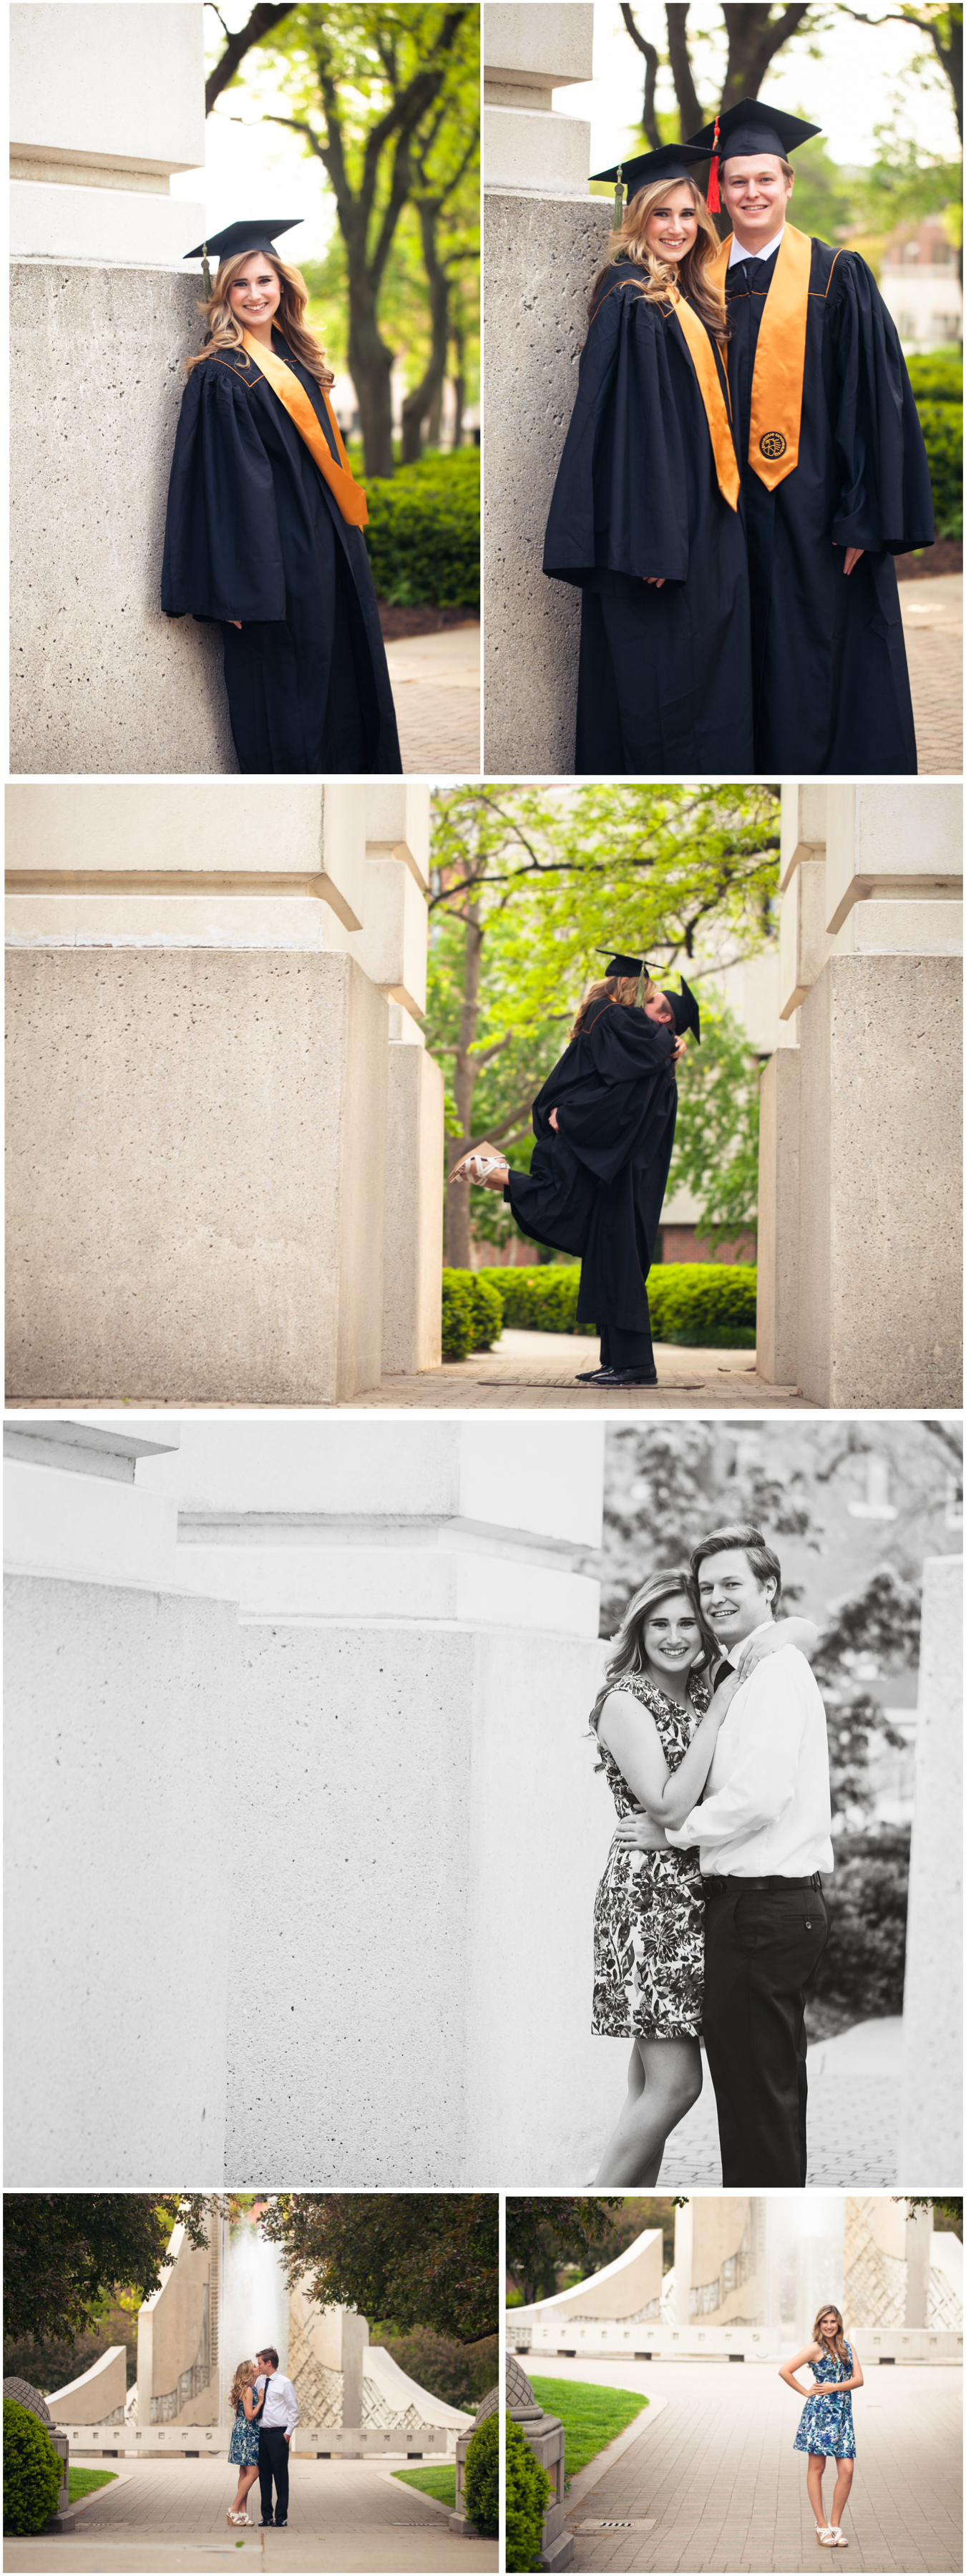 natalie and sam 3 purdue senior graduation photographer